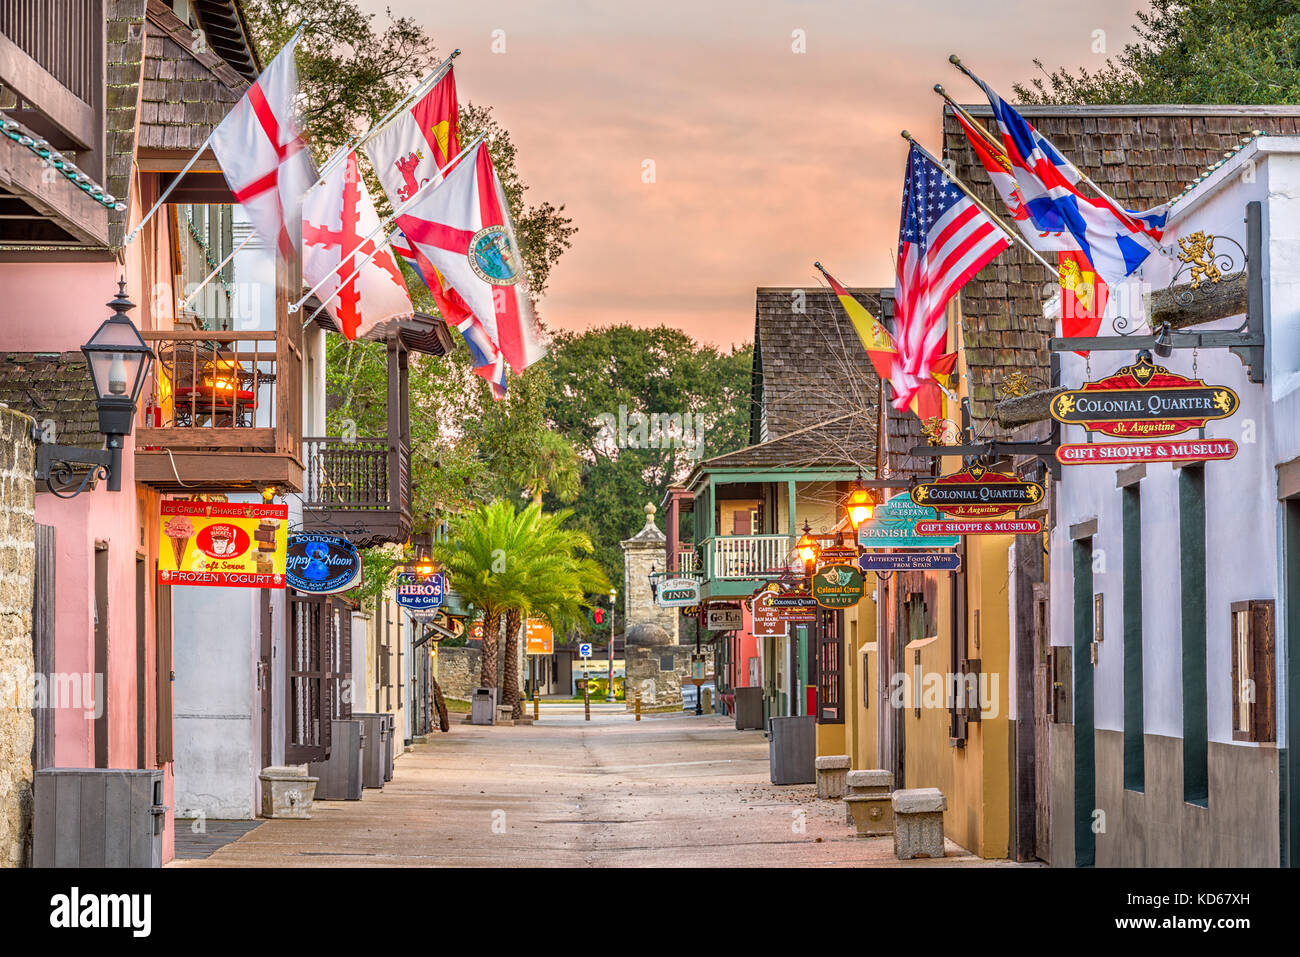 ST. AUGUSTINE, FLORIDA - JANUARY 5, 2015: Shops and inns line St. George. Once the main street, it is still considered - Stock Image